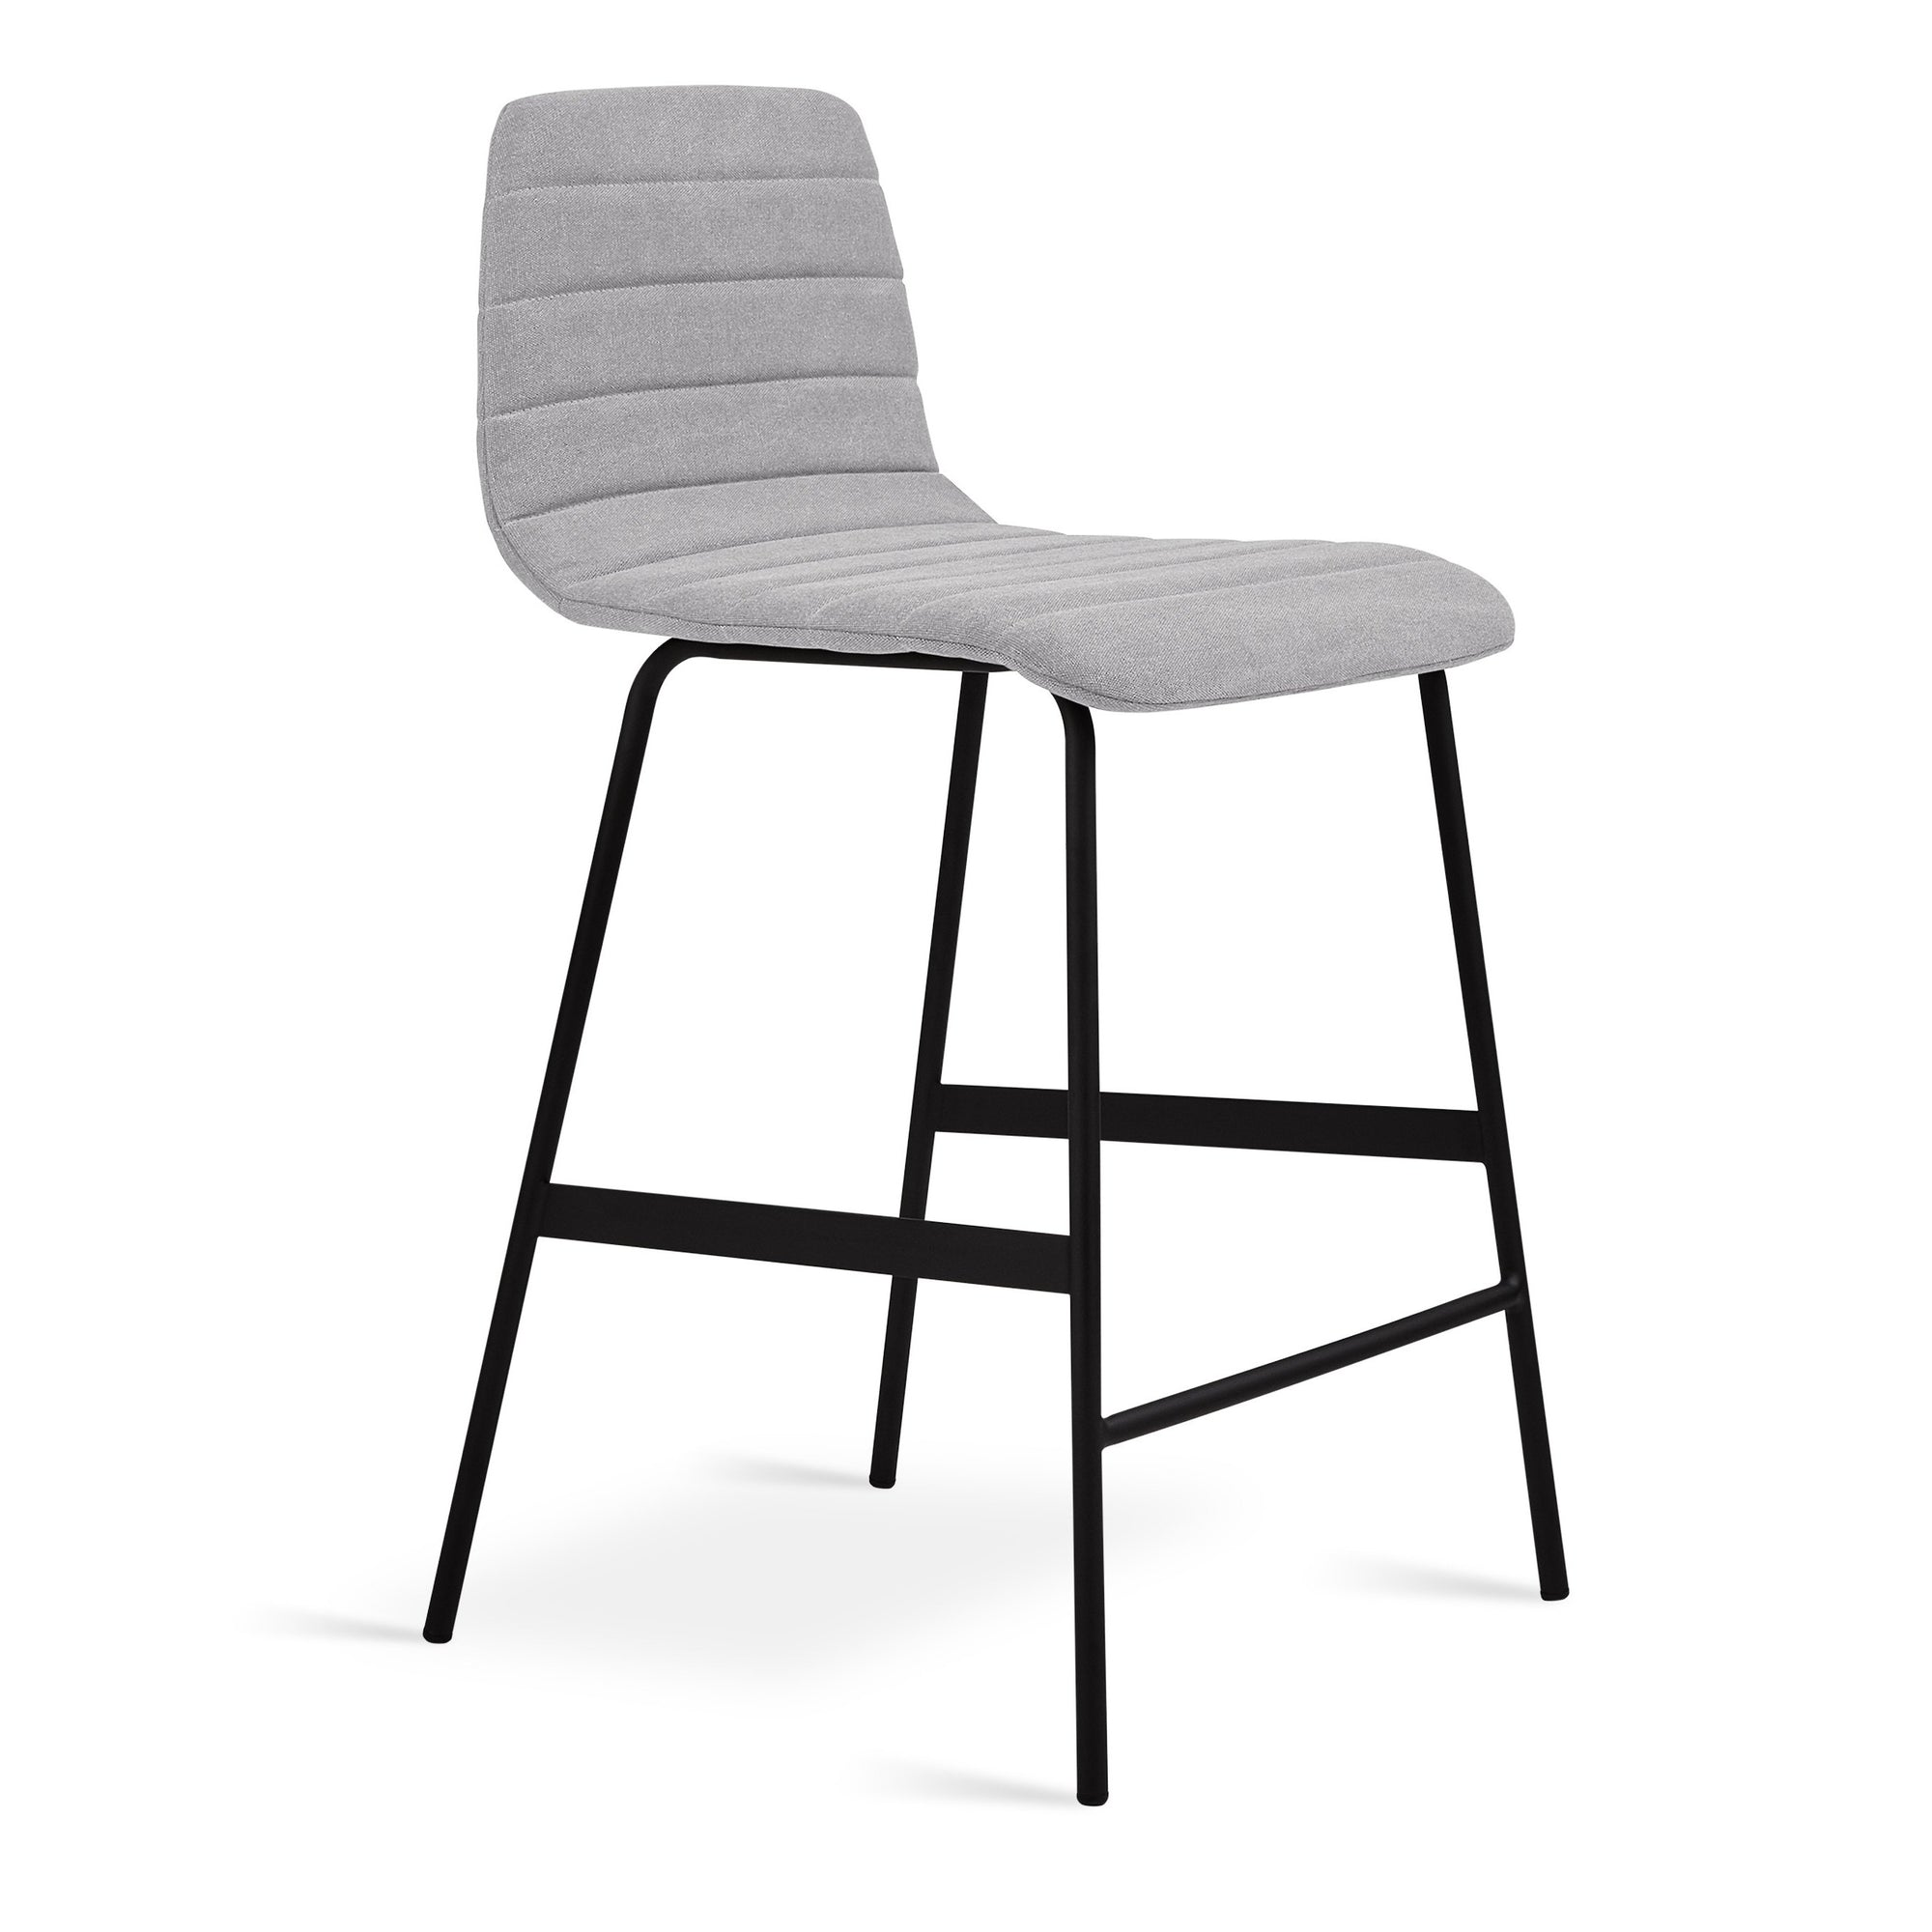 Gus* Modern Lecture Upholstered Counter Stool - Rug & Weave